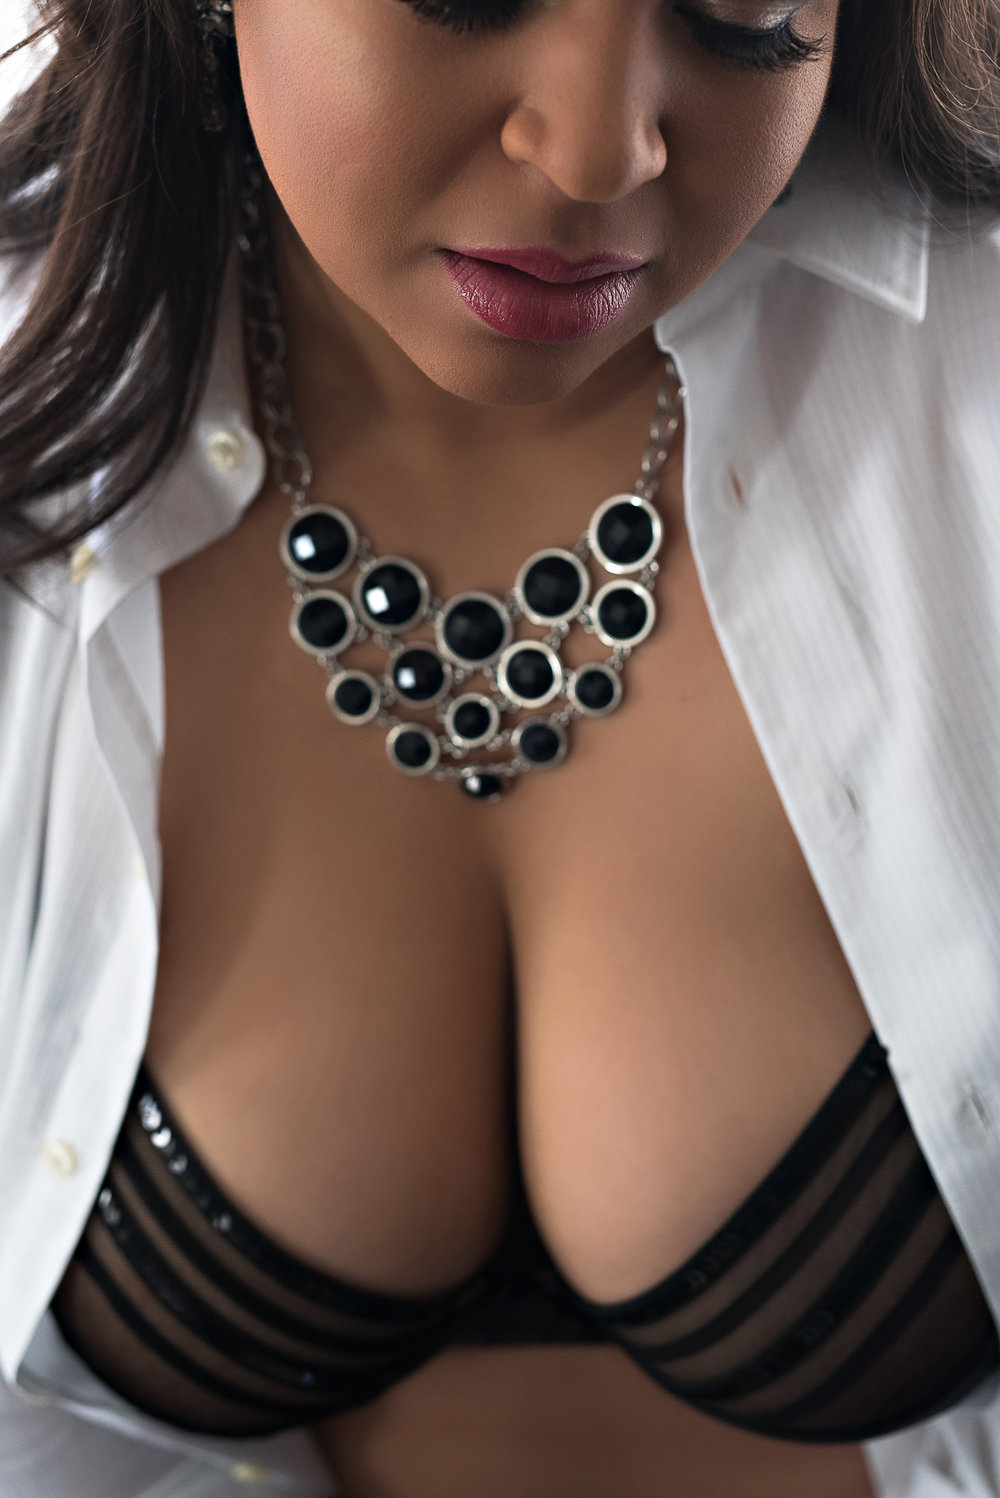 Denver boudoir photo of african american woman wearing black lingerie and unbuttoned dress shirt